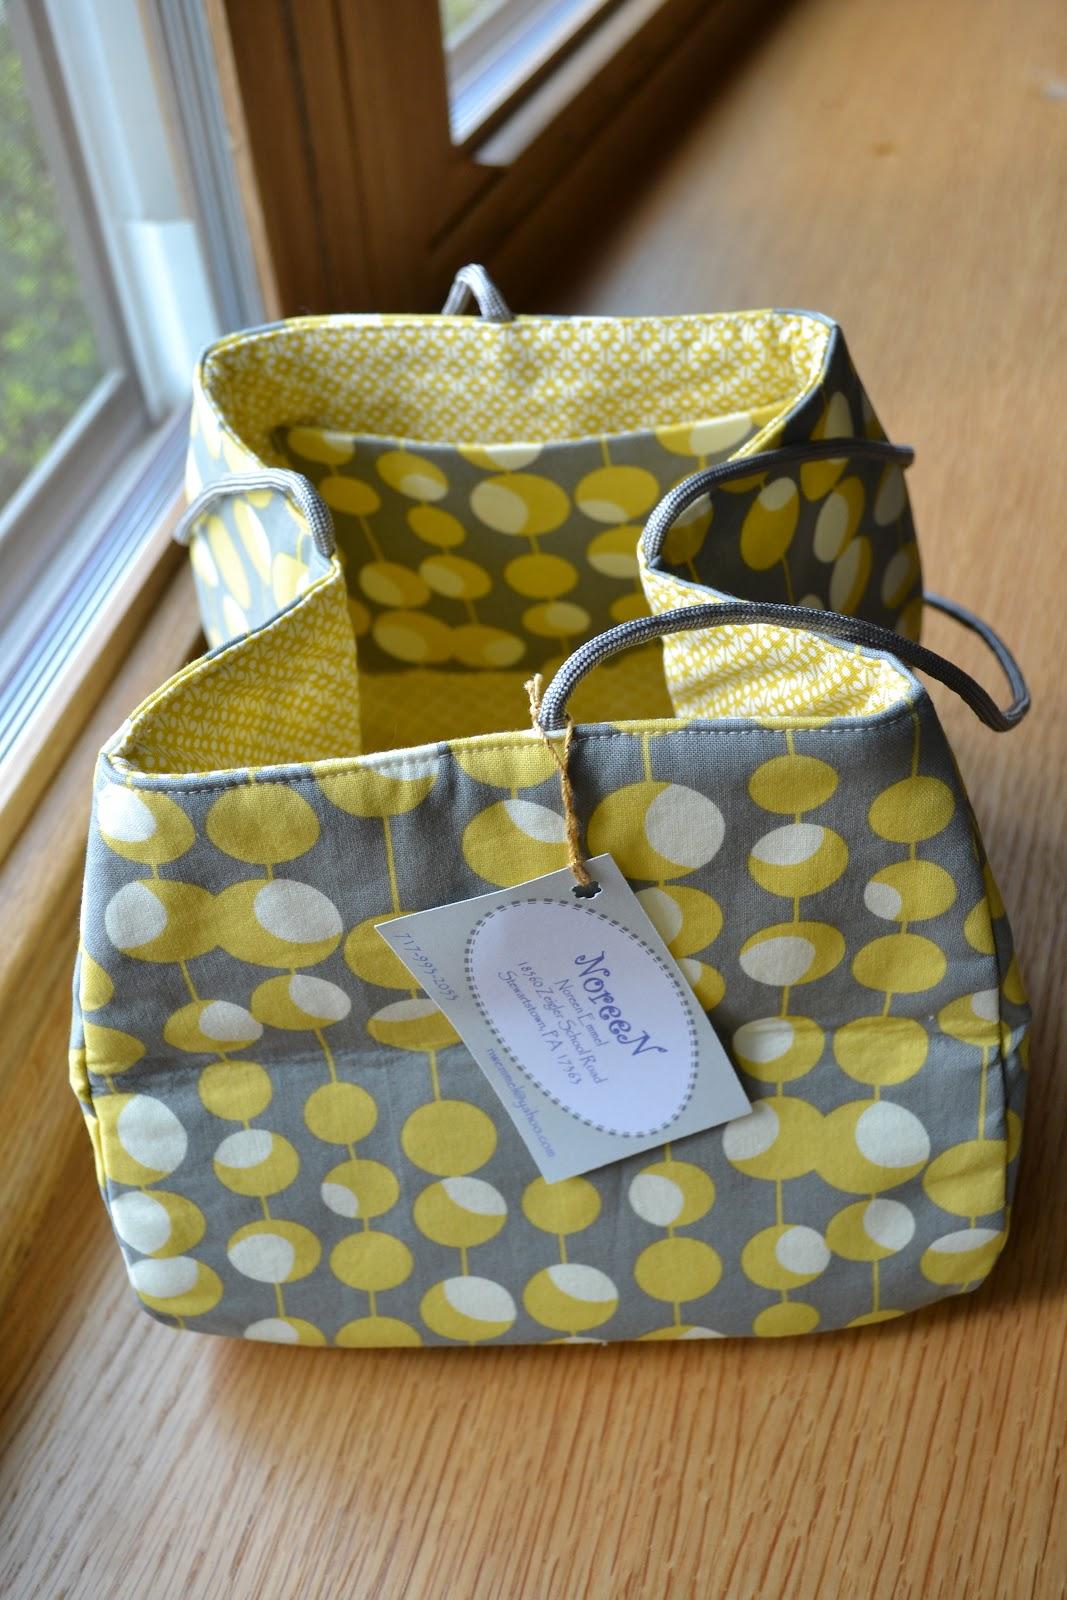 Knitting Project Bag Sewing Pattern : Susan B. Anderson: Apr 17, 2012